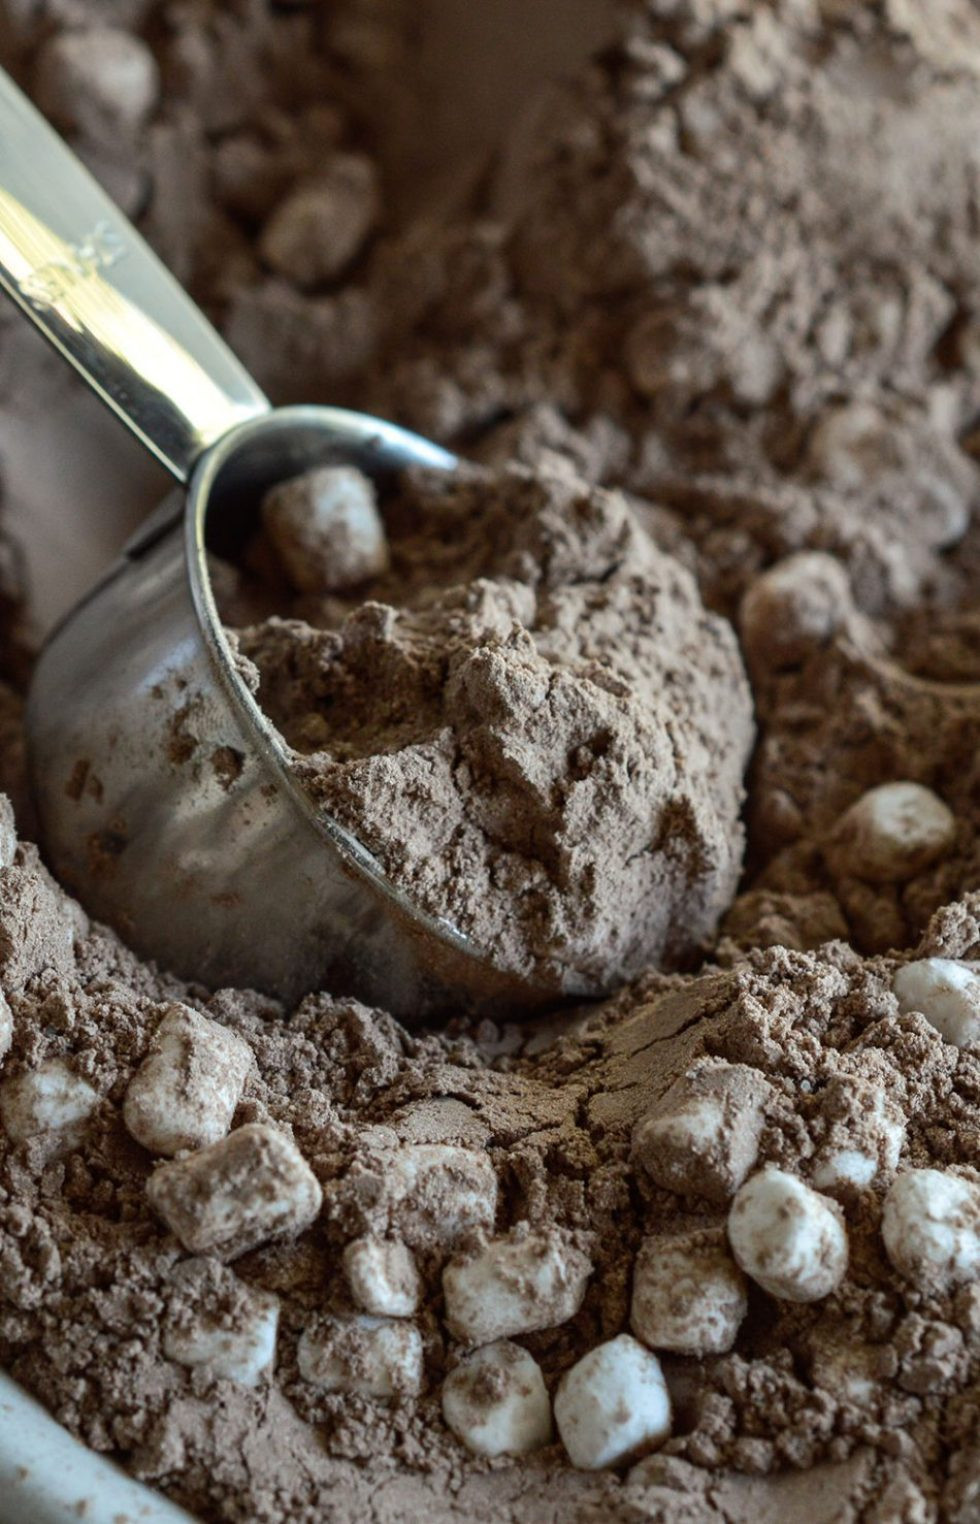 Best ideas about DIY Hot Cocoa Mix . Save or Pin Homemade Hot Cocoa Mix Recipe WonkyWonderful Now.